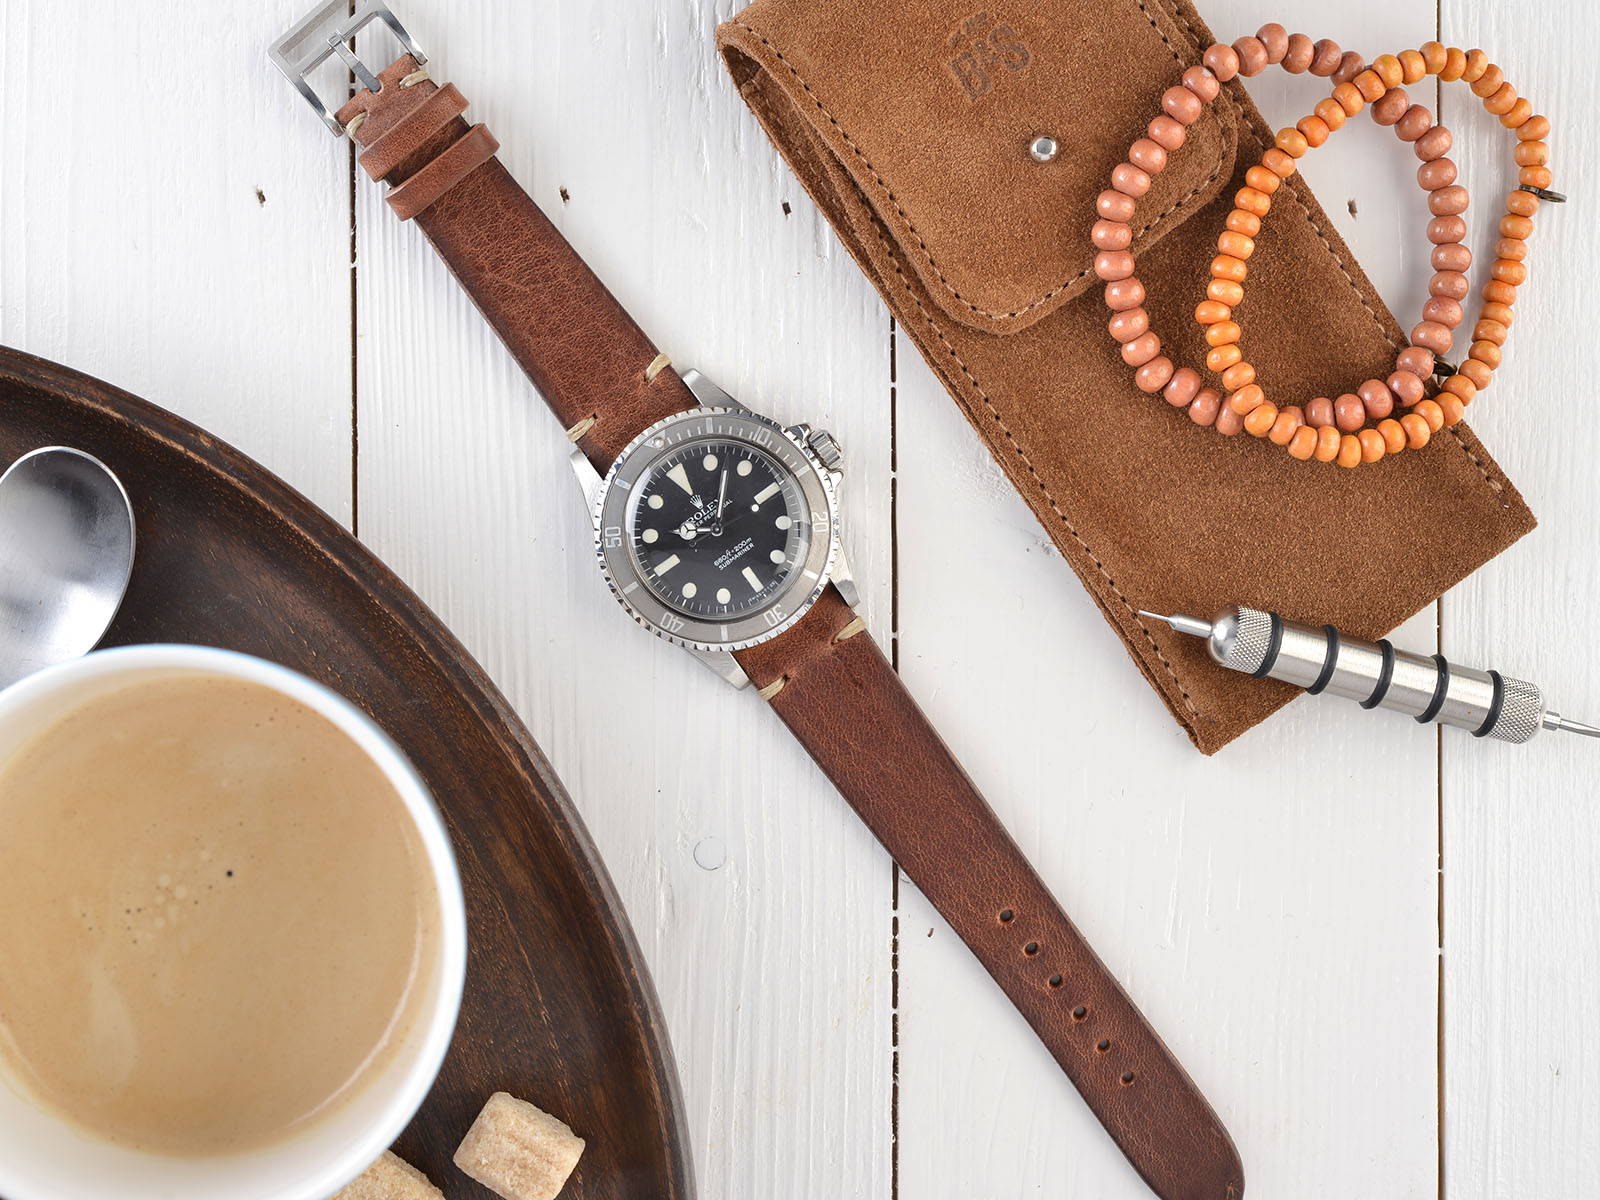 B&S Cotto Brown Watch Strap 20 mm